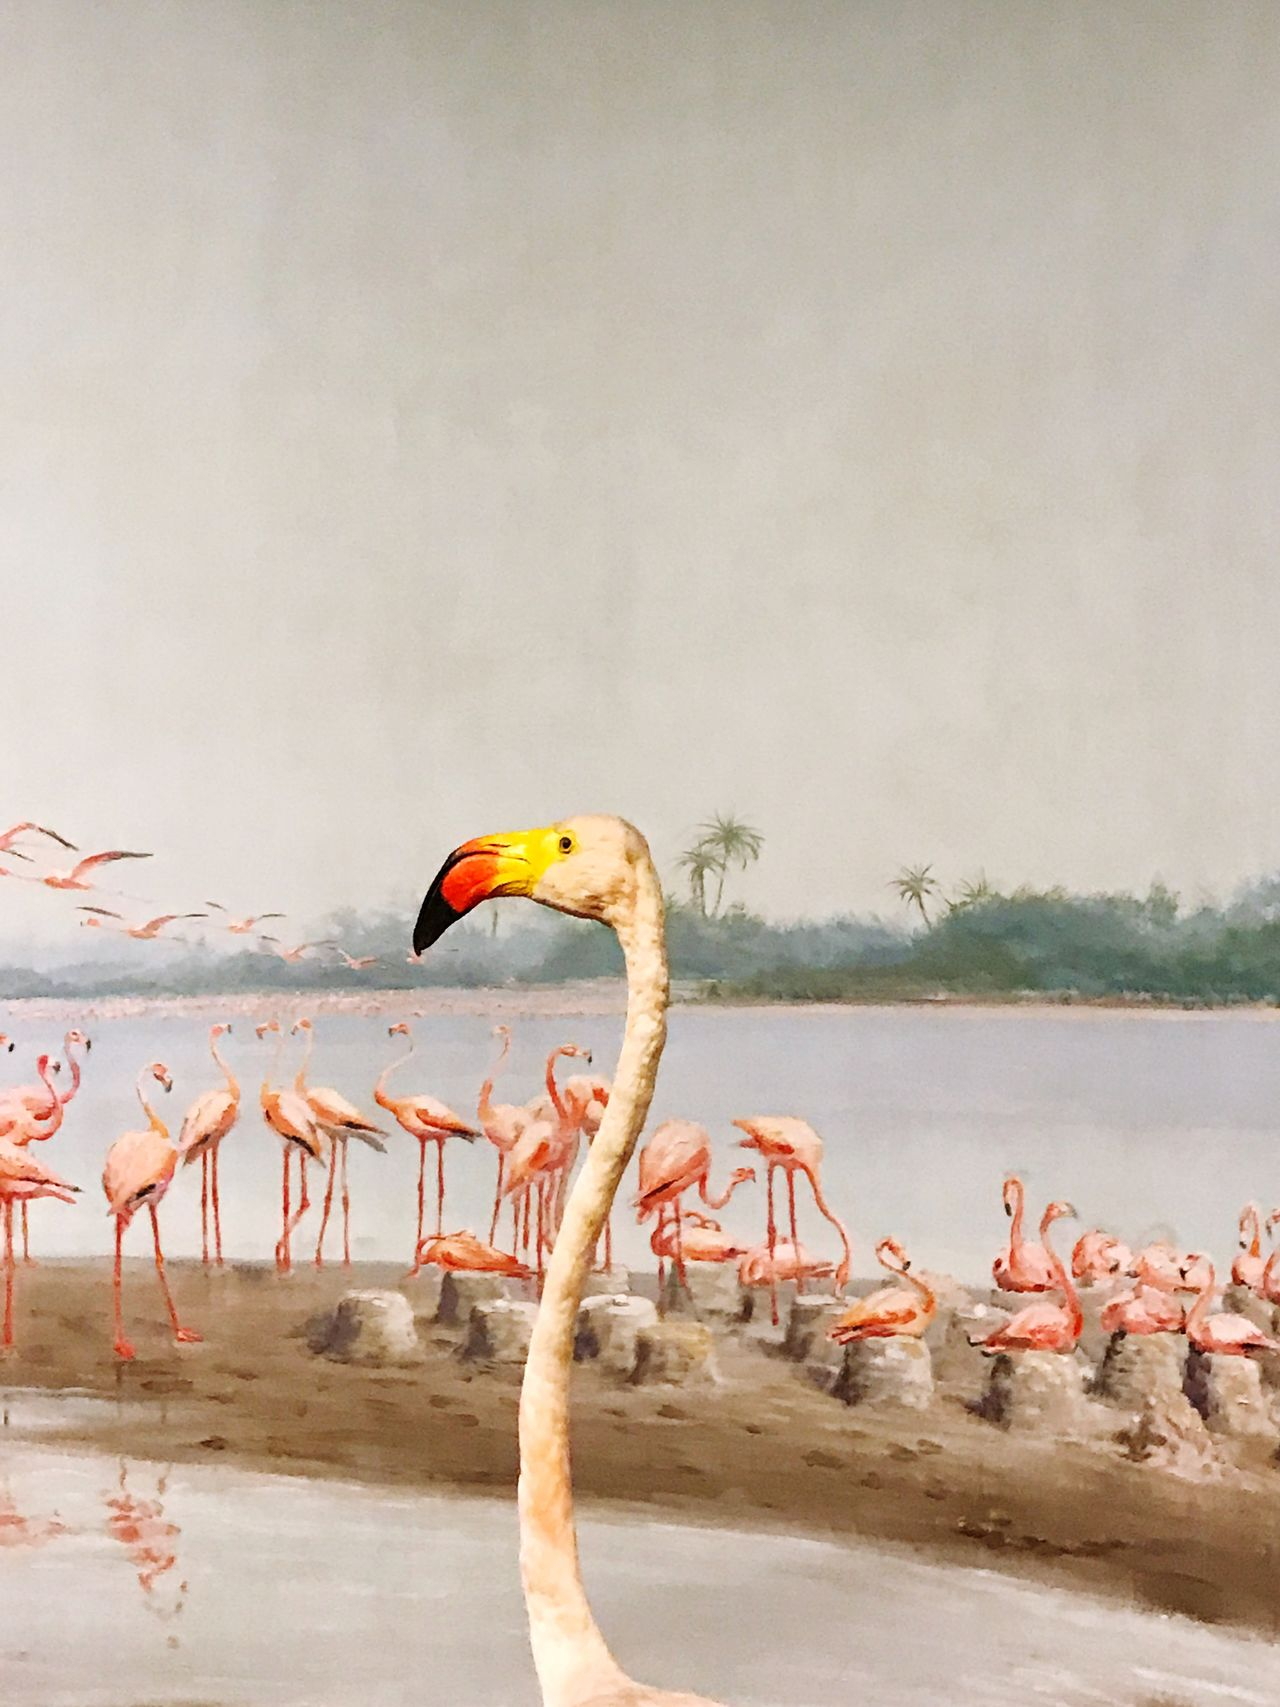 Bird Animals In The Wild Flamingo Animal Themes Animal Wildlife Nature Water No People Beauty In Nature Day Lake Scenics Outdoors Large Group Of Animals Beak Sky